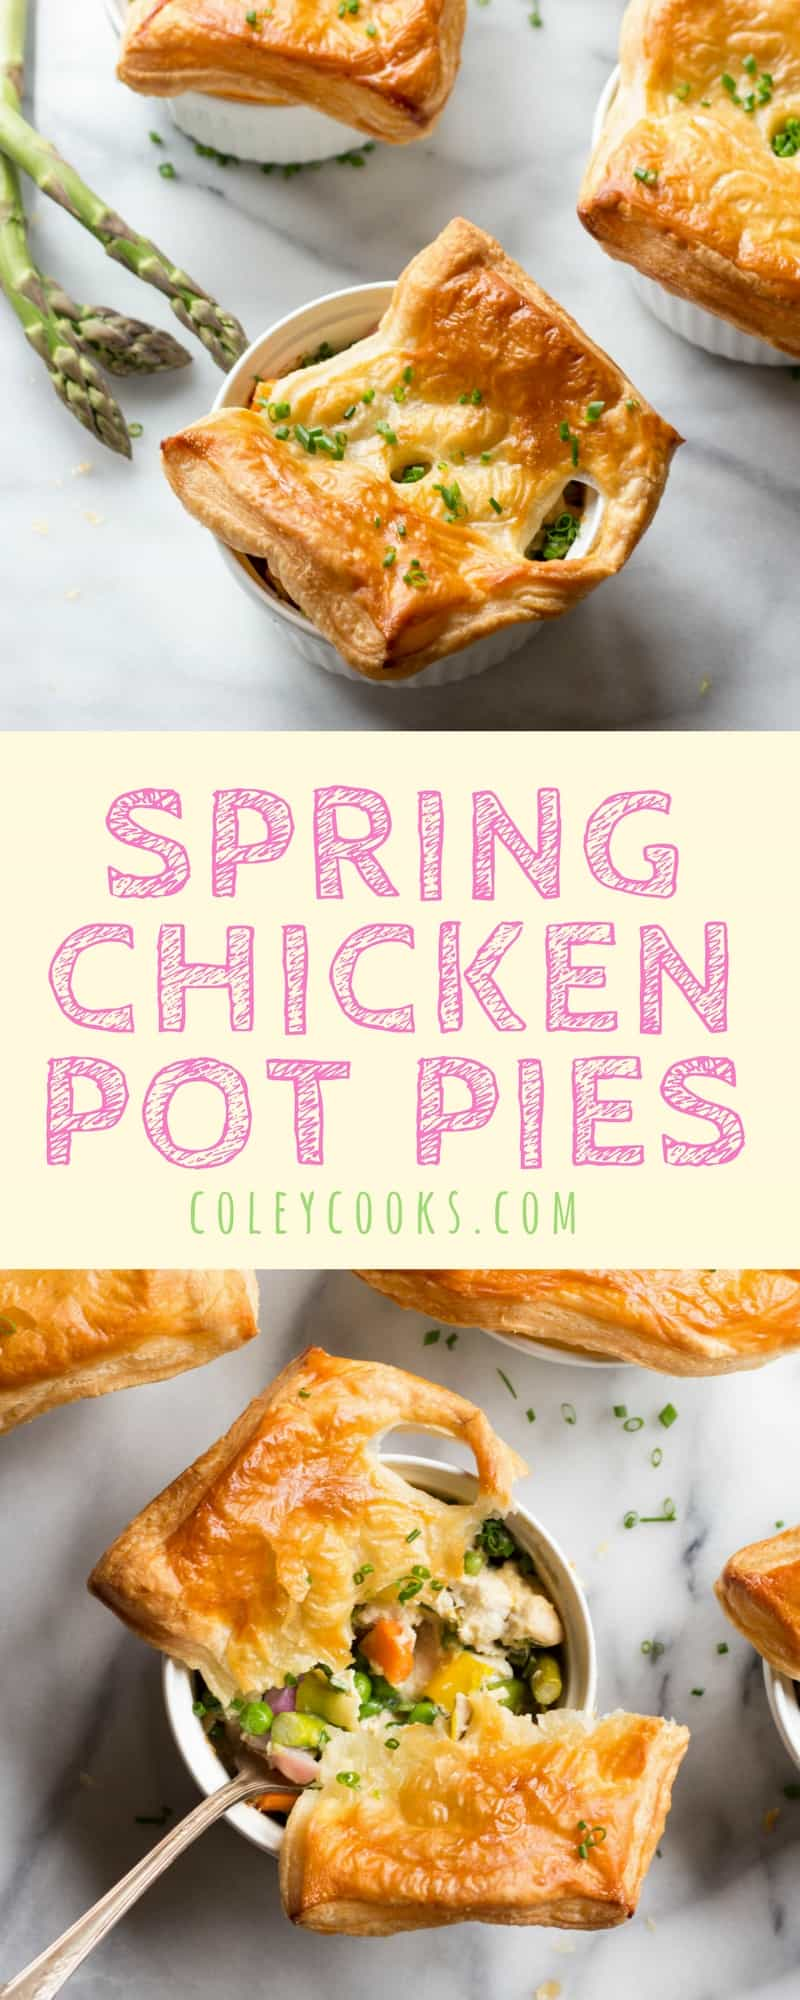 Spring Chicken Pot Pies | All of the Spring Veggies, Tender Chicken, and Crisp Puff Pastry. Easy spring recipe! | ColeyCooks.com